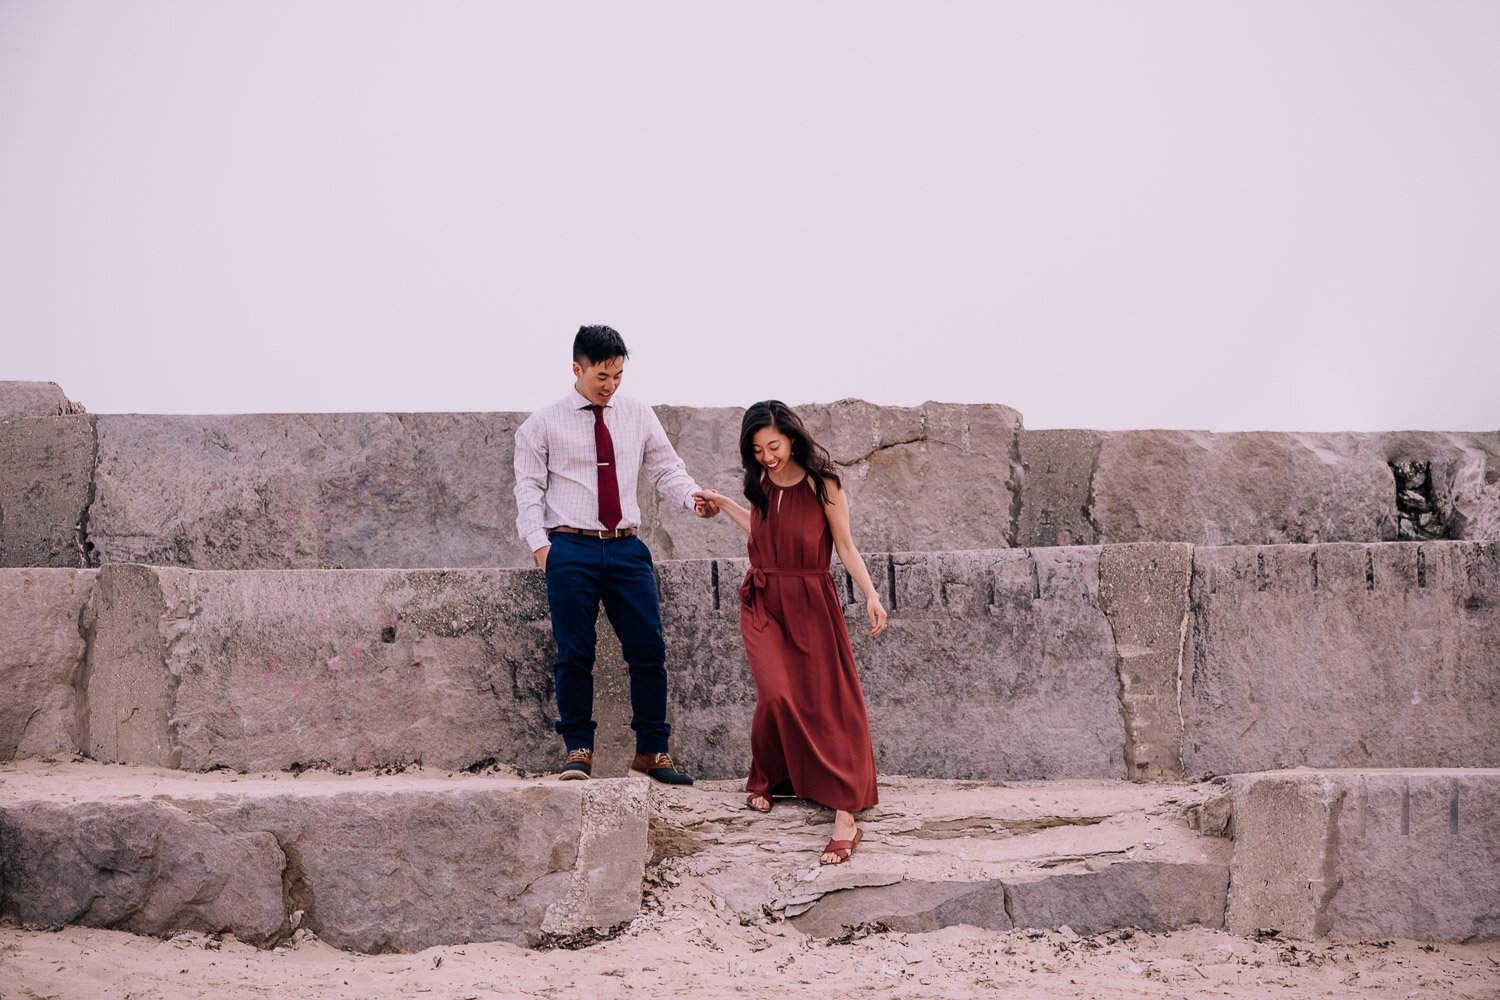 erica-andrew-downtown-chicago-engagement-photography-videography-montrose-beach-47